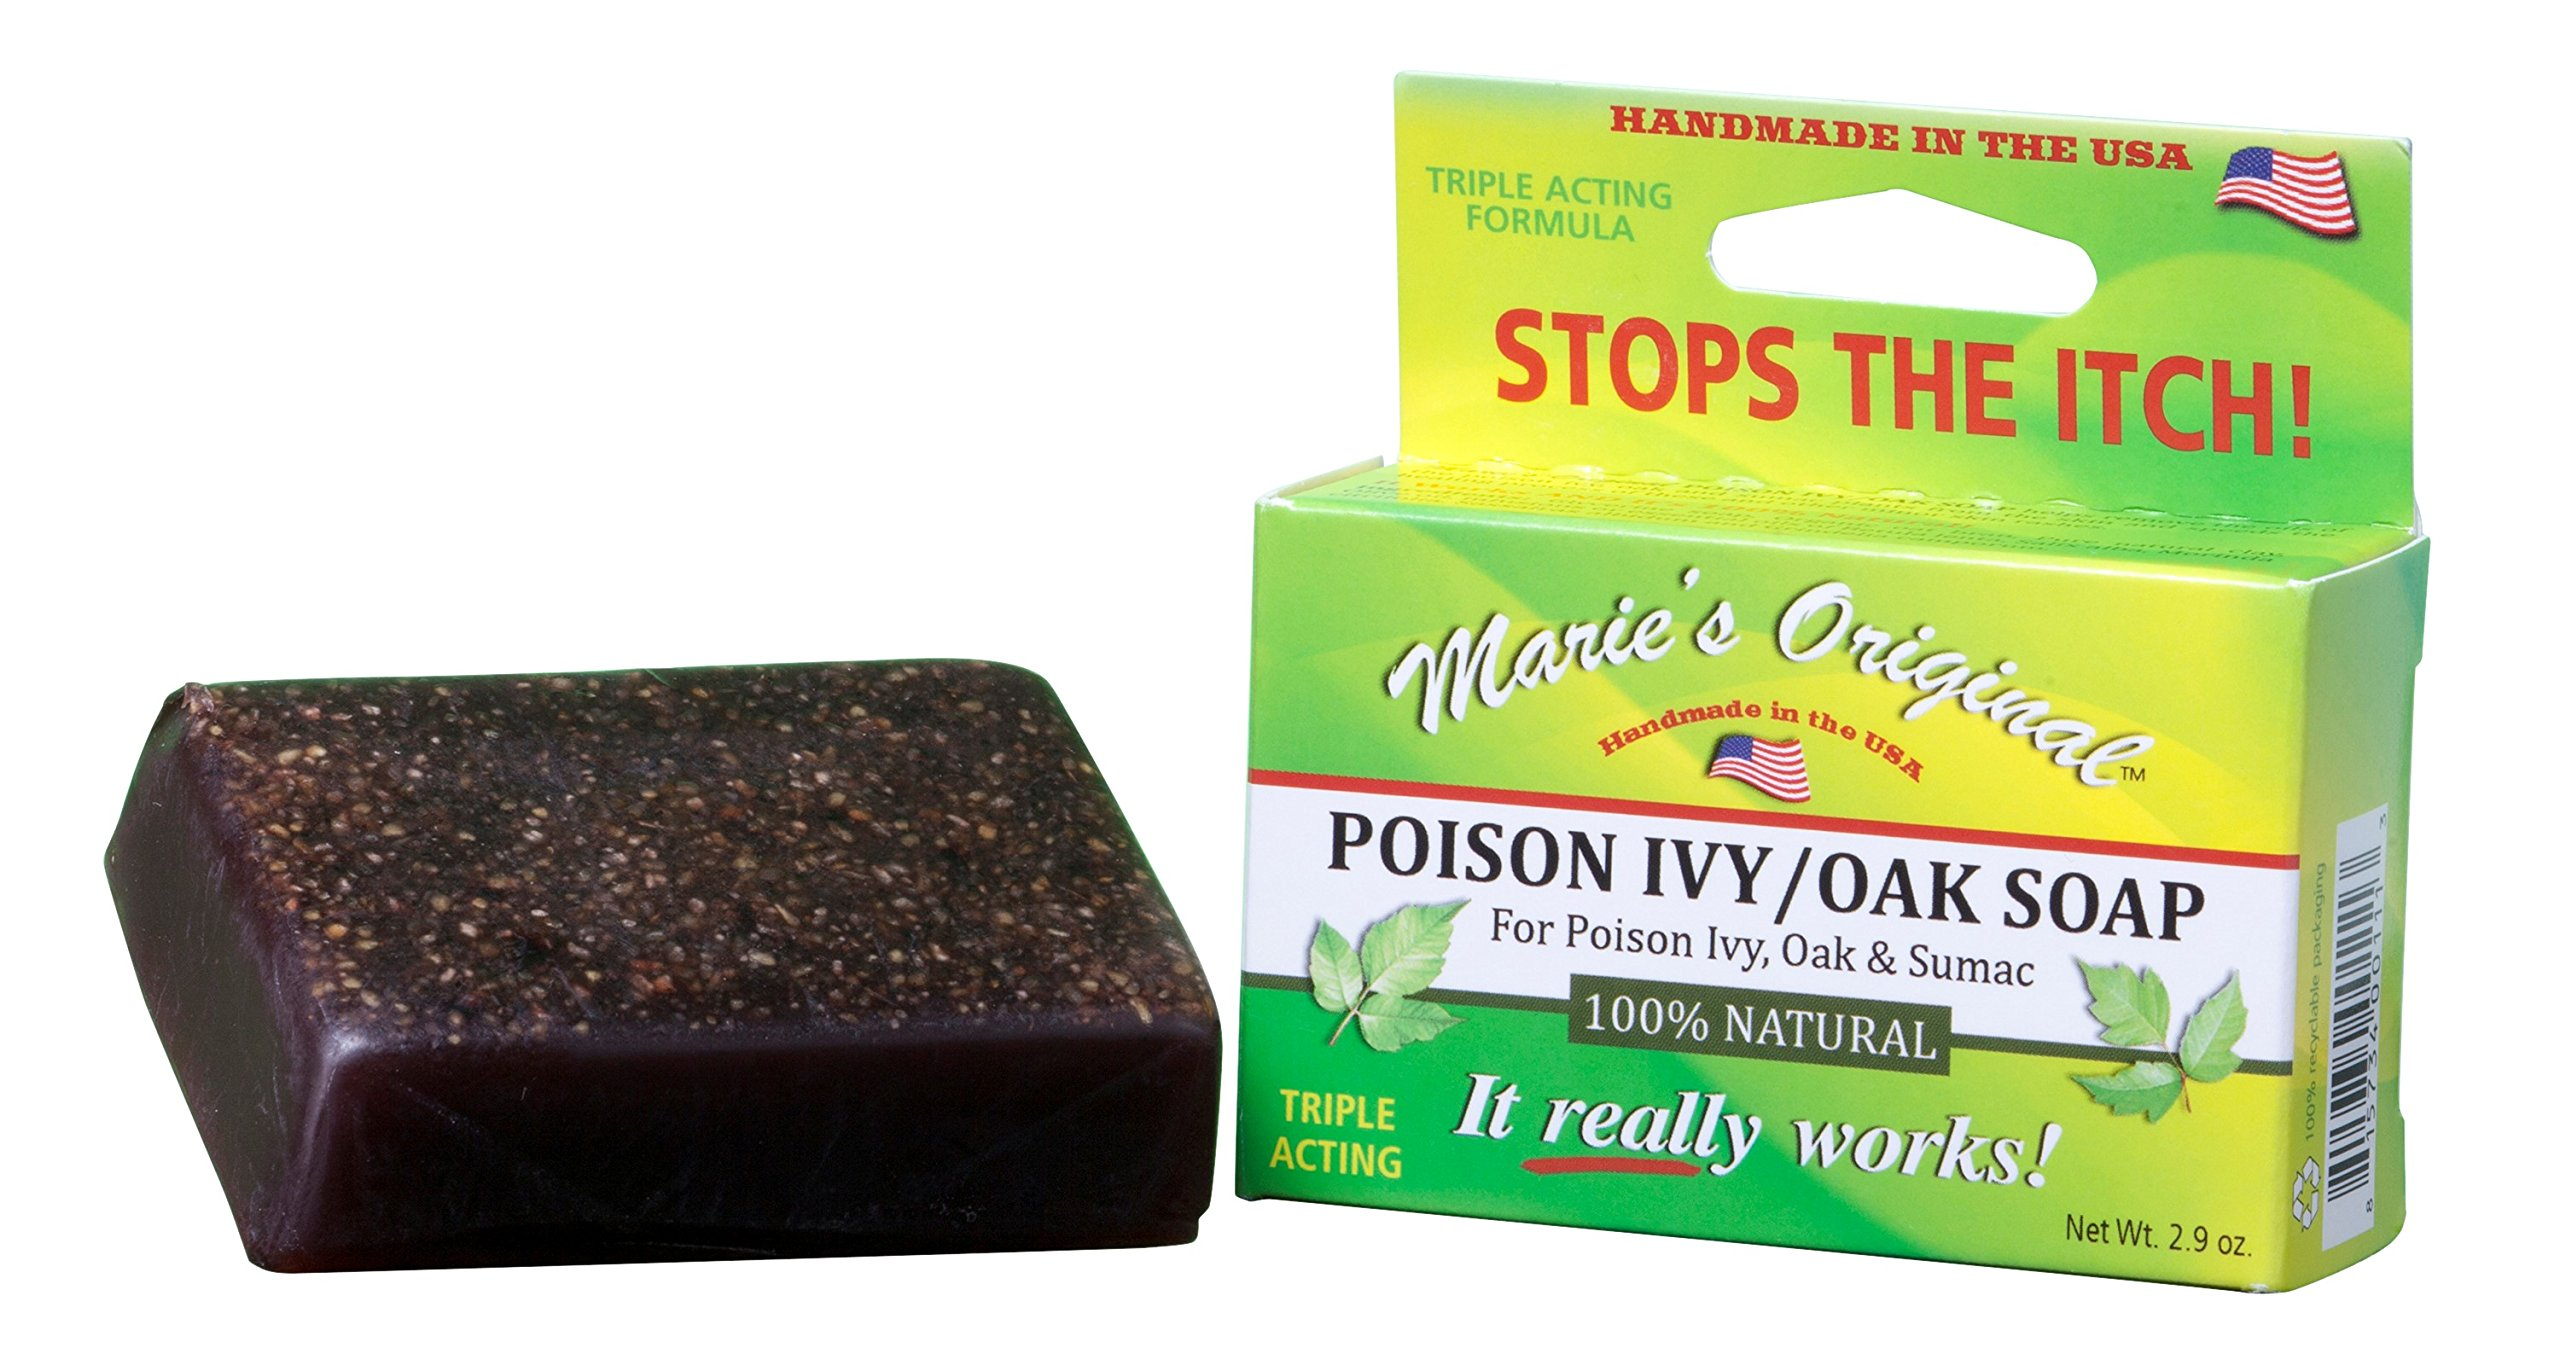 Marie's Original Poison Ivy Soap Bar – 100% All Natural Triple Acting Formula – Anti Itch Treatment for Poison Ivy, Poison Oak and Sumac – Removes Oils, Soothes and Relives Rashes - 2.9oz